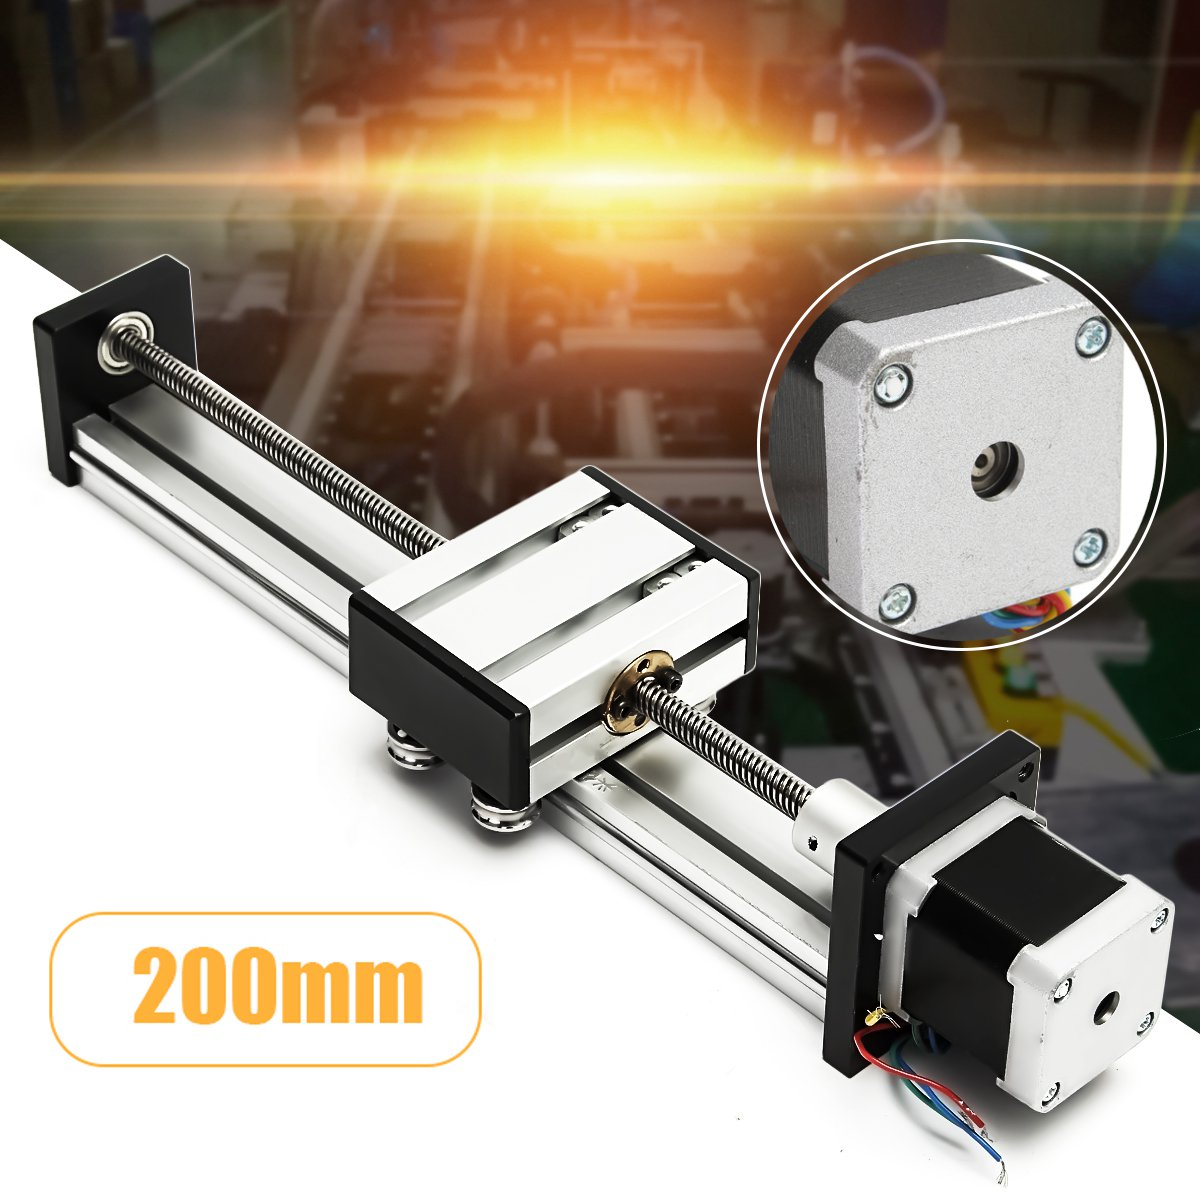 200mm Slide Stroke CNC Linear Motion Lead Screw Slide Stage Stroke 42 Actuator Stepper Motor For Engraving Machine200mm Slide Stroke CNC Linear Motion Lead Screw Slide Stage Stroke 42 Actuator Stepper Motor For Engraving Machine